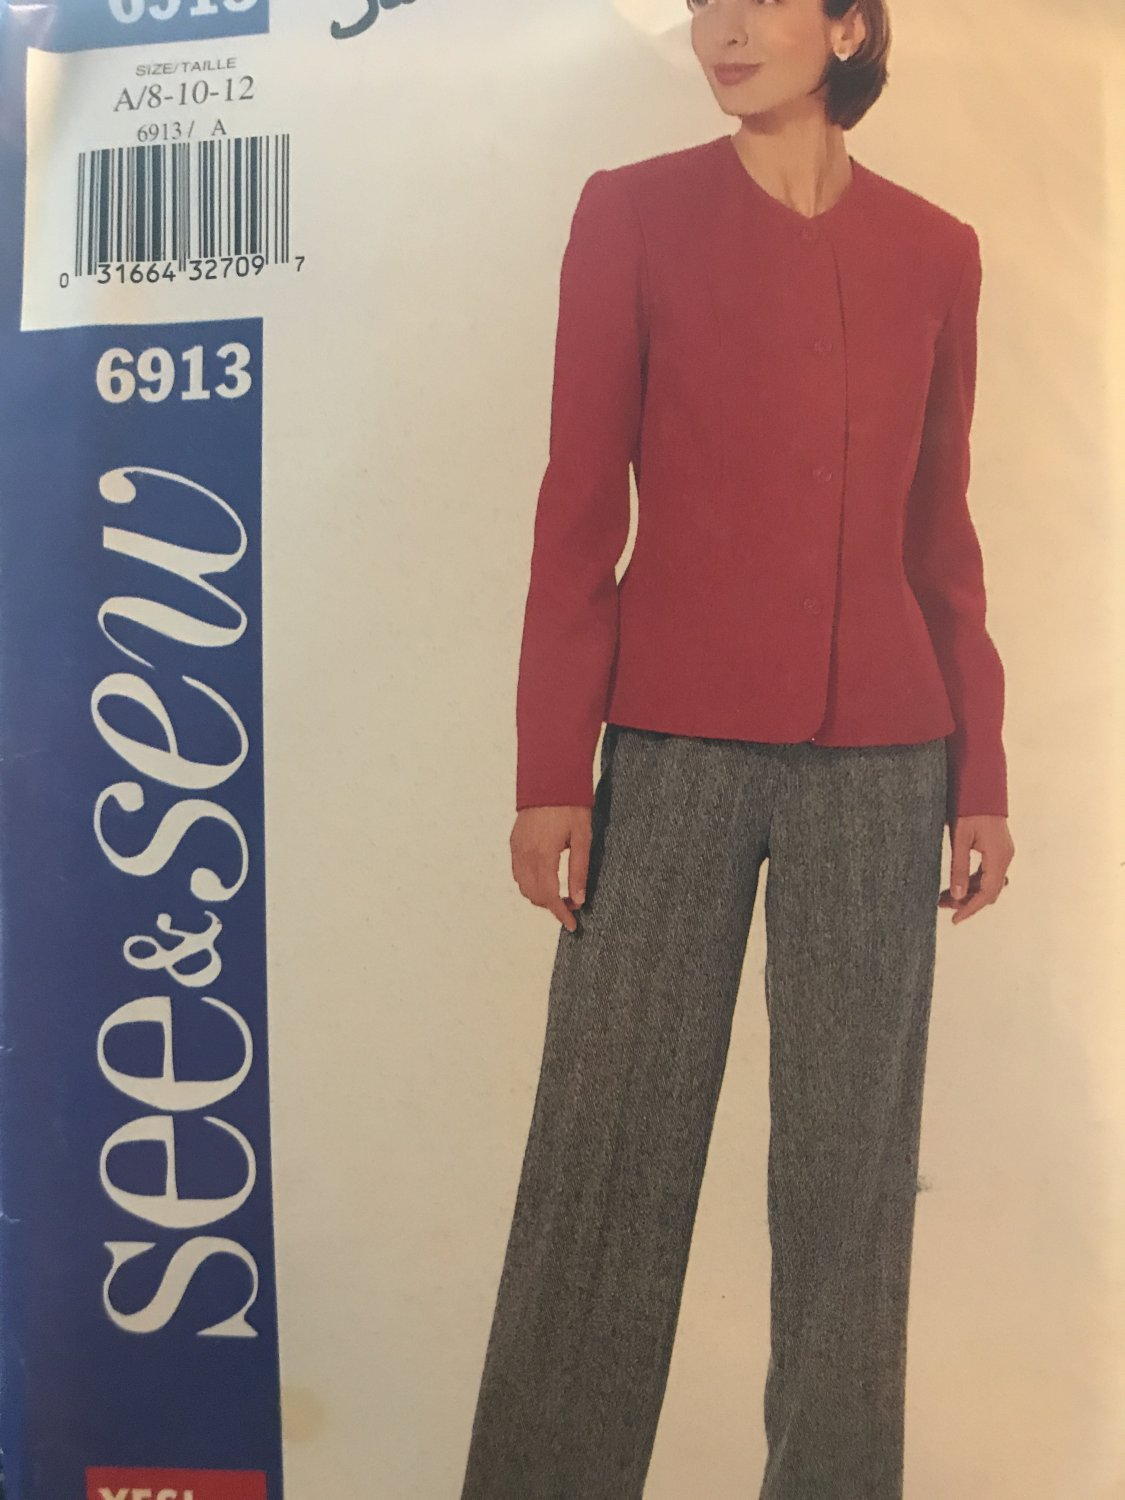 Butterick 6913 See & Sew Jacket and Pants sewing Pattern Size 8 - 10 - 12